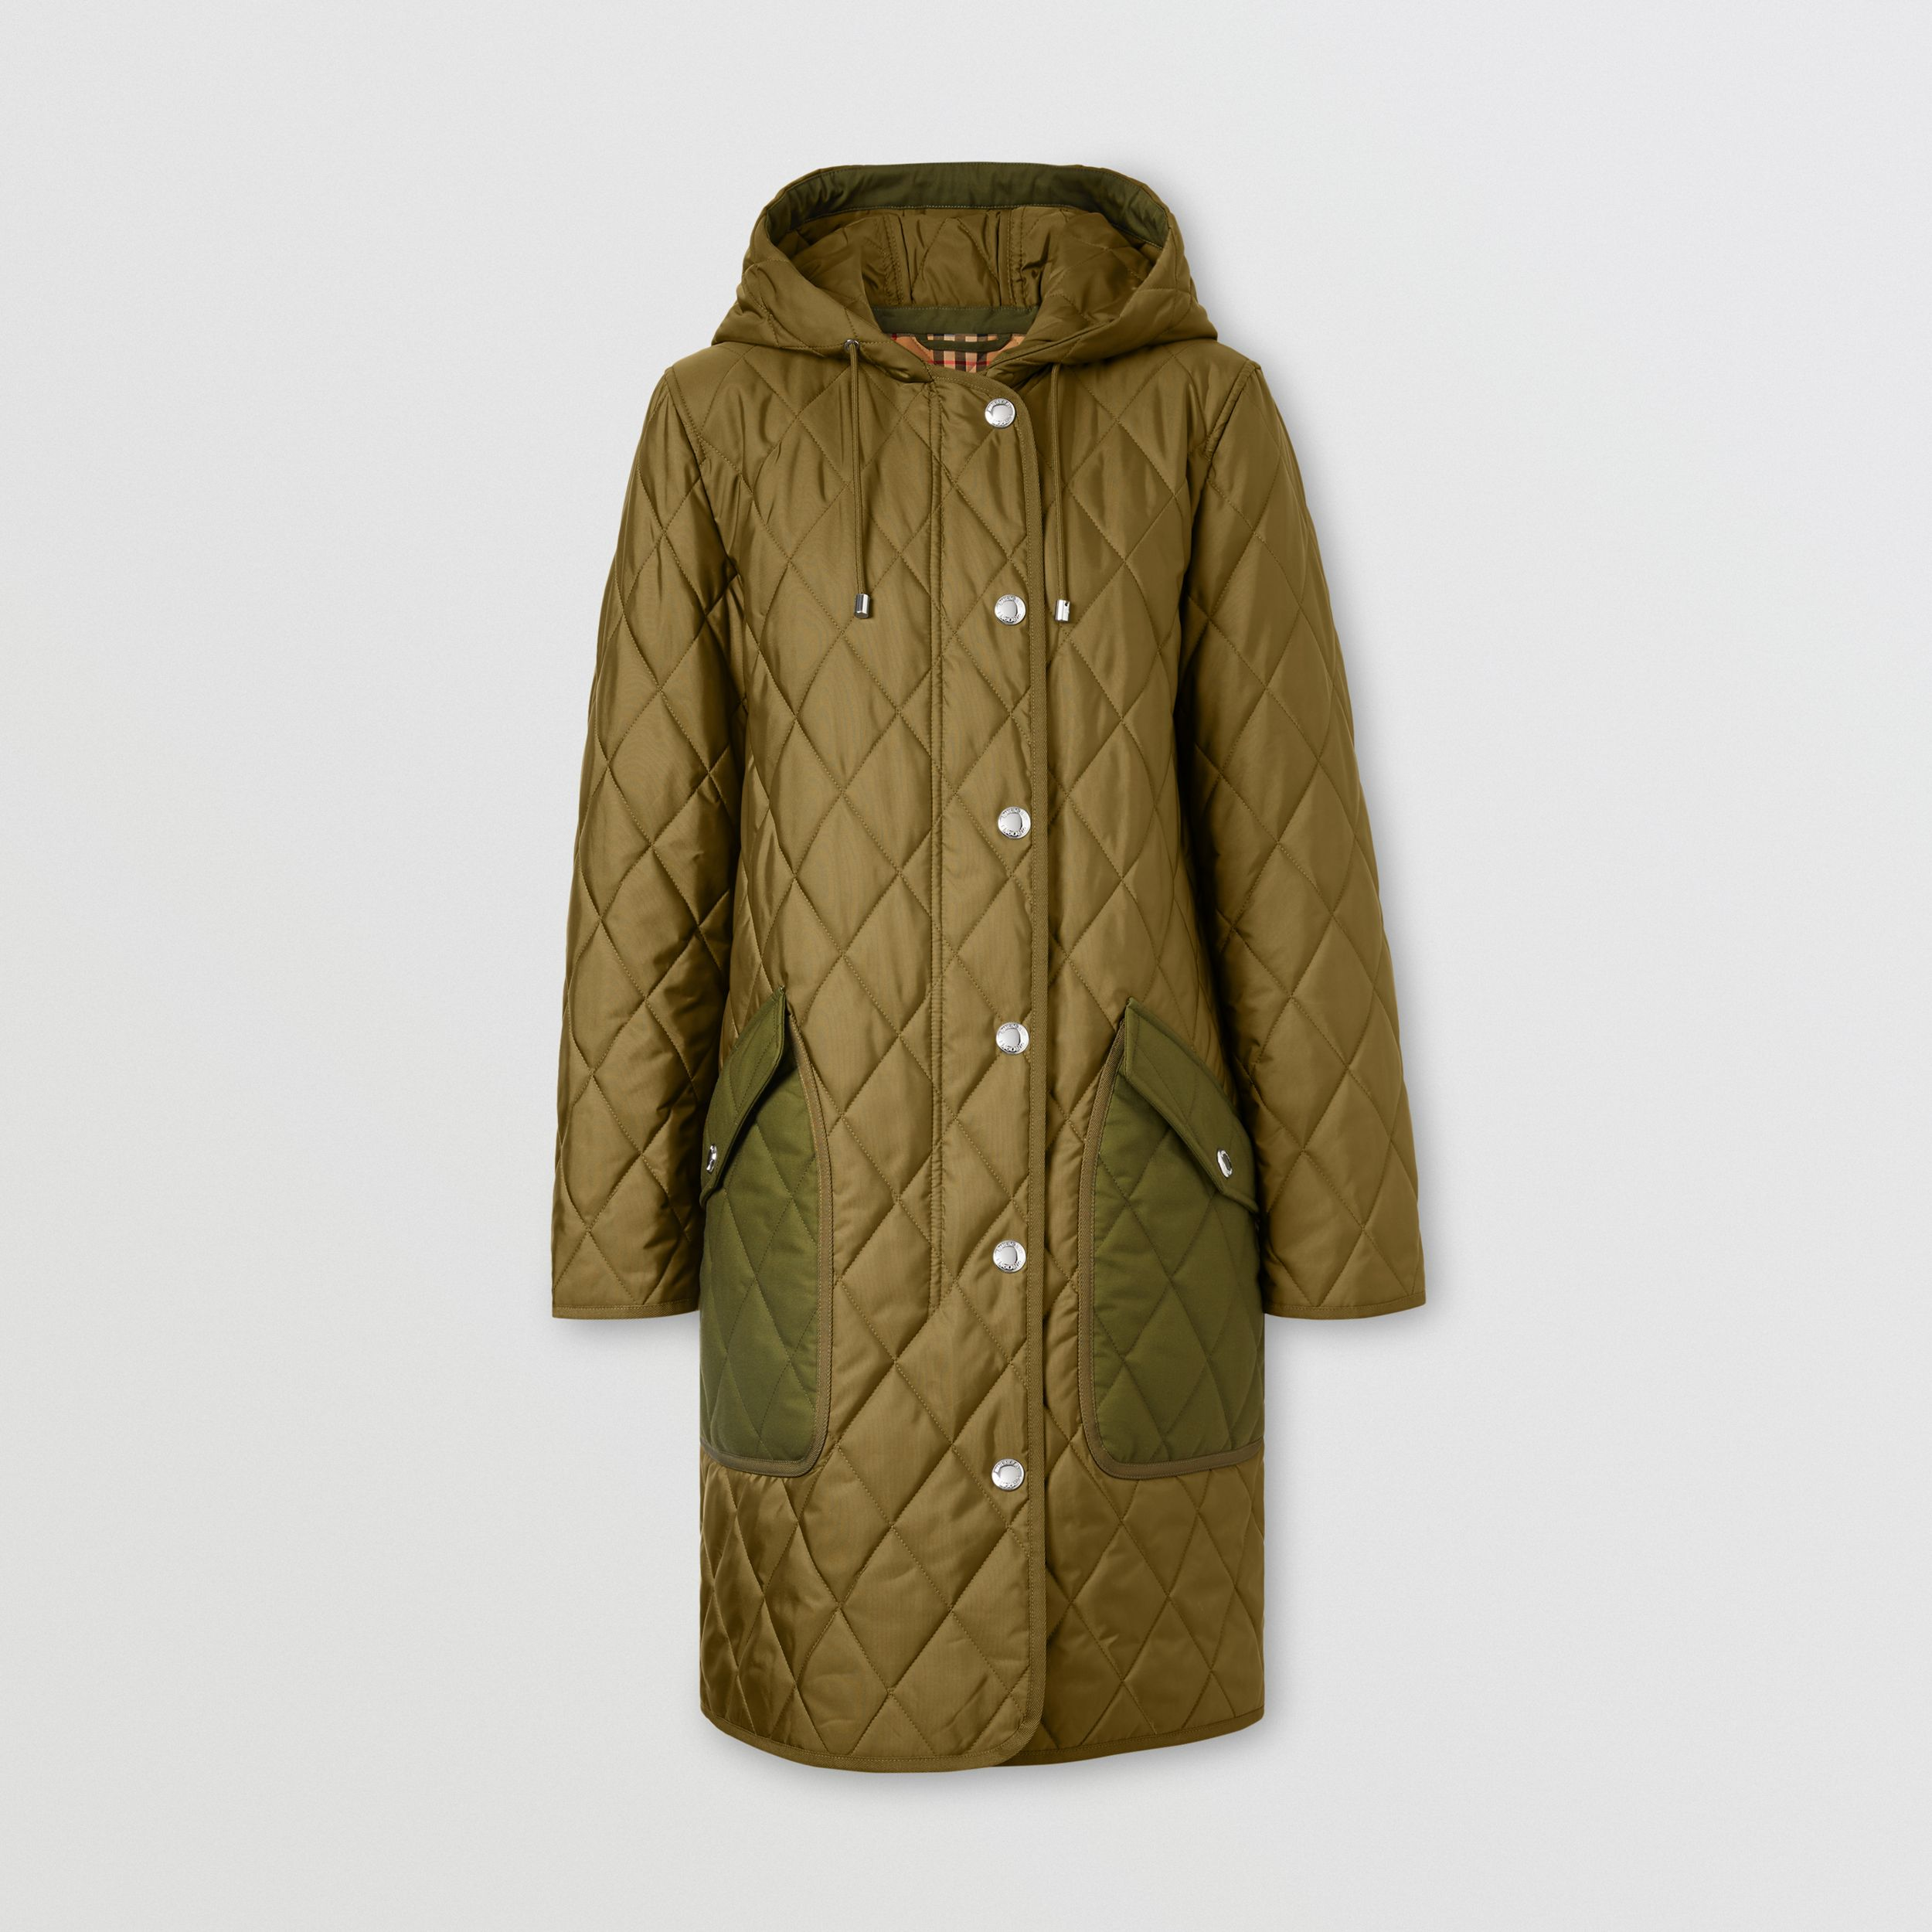 Diamond Quilted Thermoregulated Hooded Coat in Military Green - Women | Burberry - 4